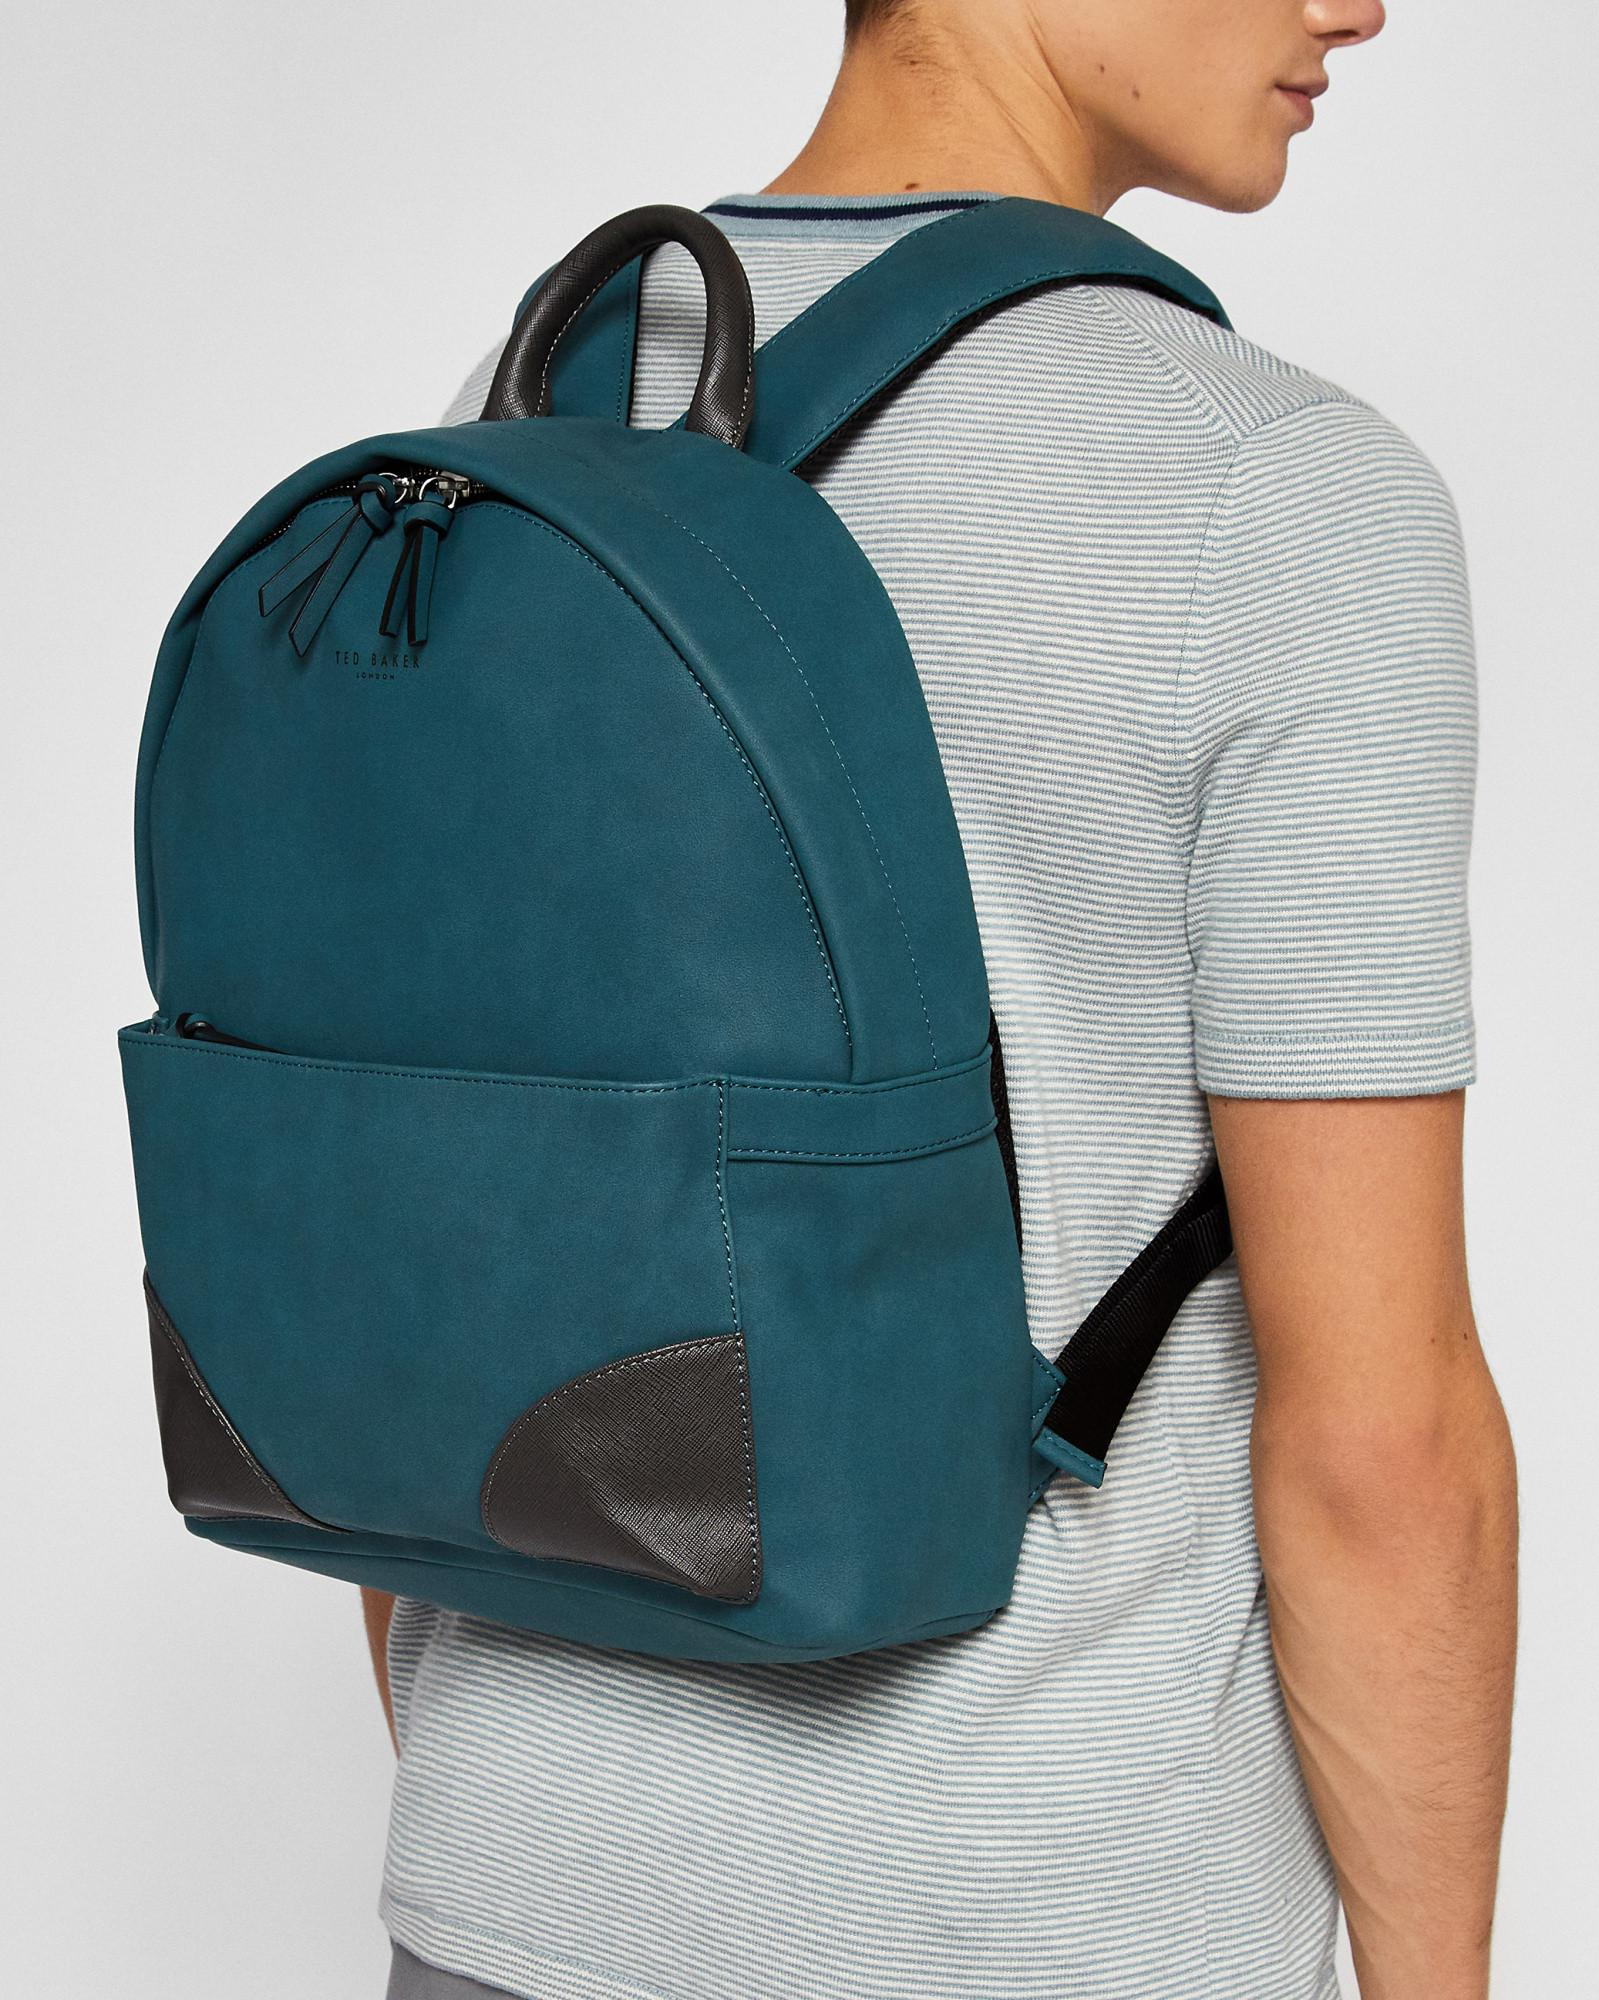 95b7b5914f64 Ted Baker - Multicolor Faux Nubuck Backpack for Men - Lyst. View fullscreen